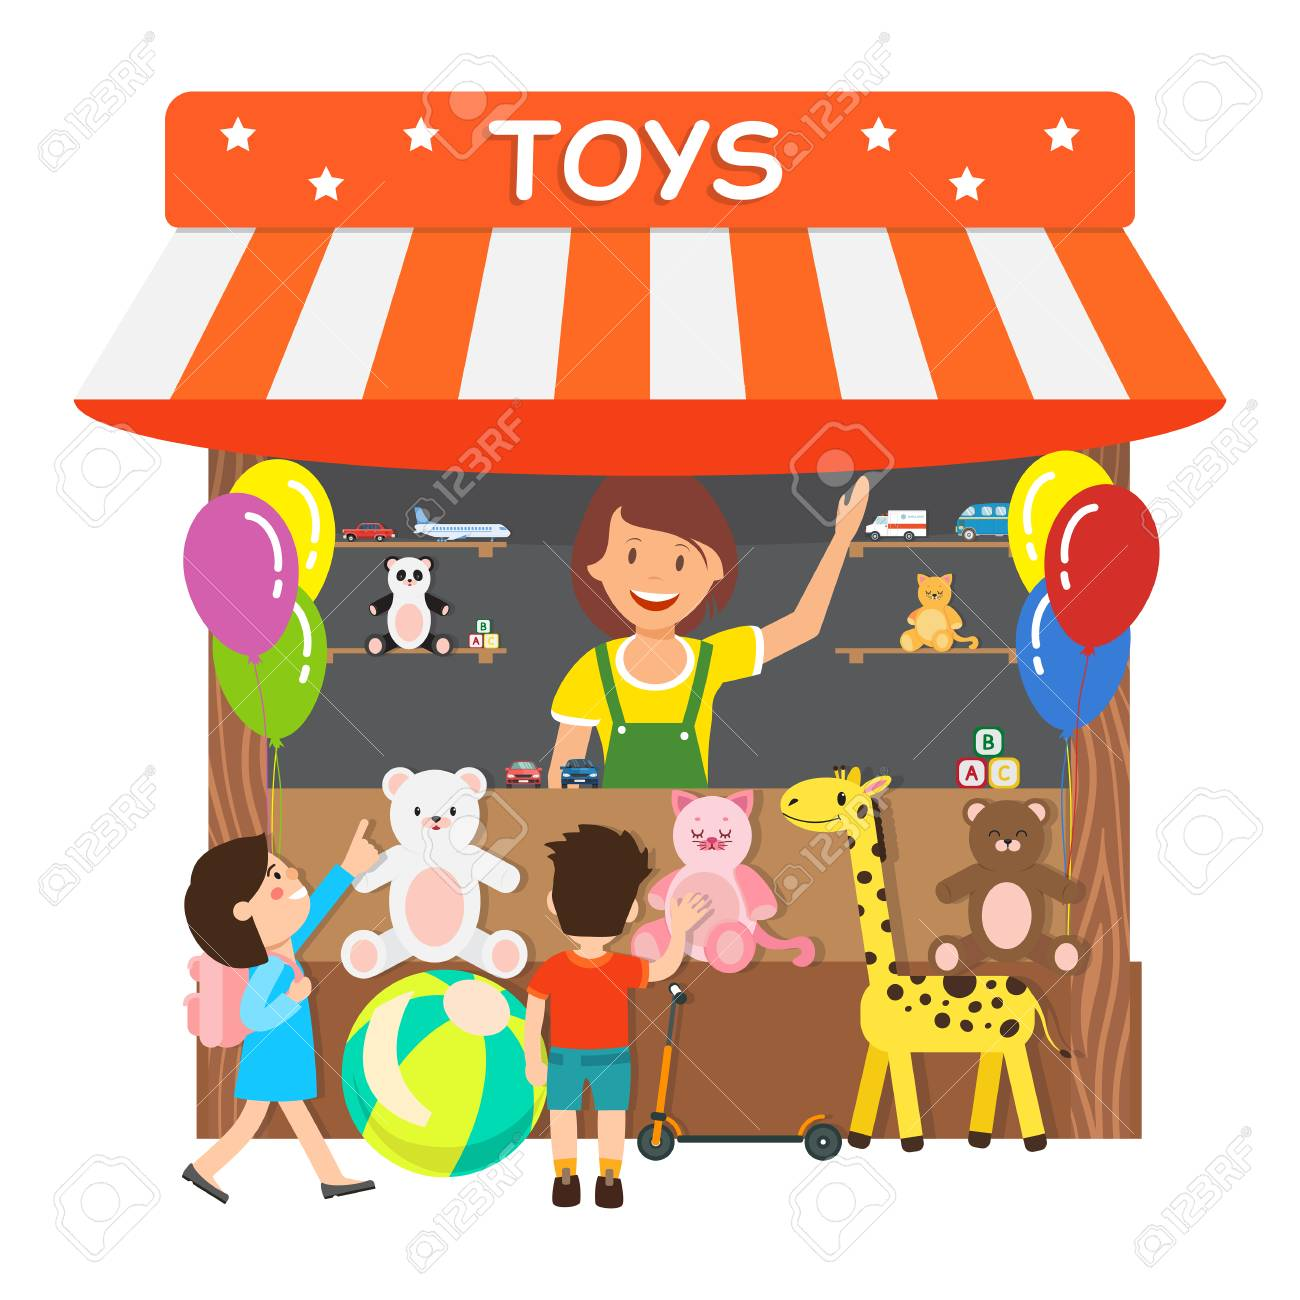 Toys Store Gift Shop Flat Vector Illustration Smiling Woman Royalty Free Cliparts Vectors And Stock Illustration Image 123227536